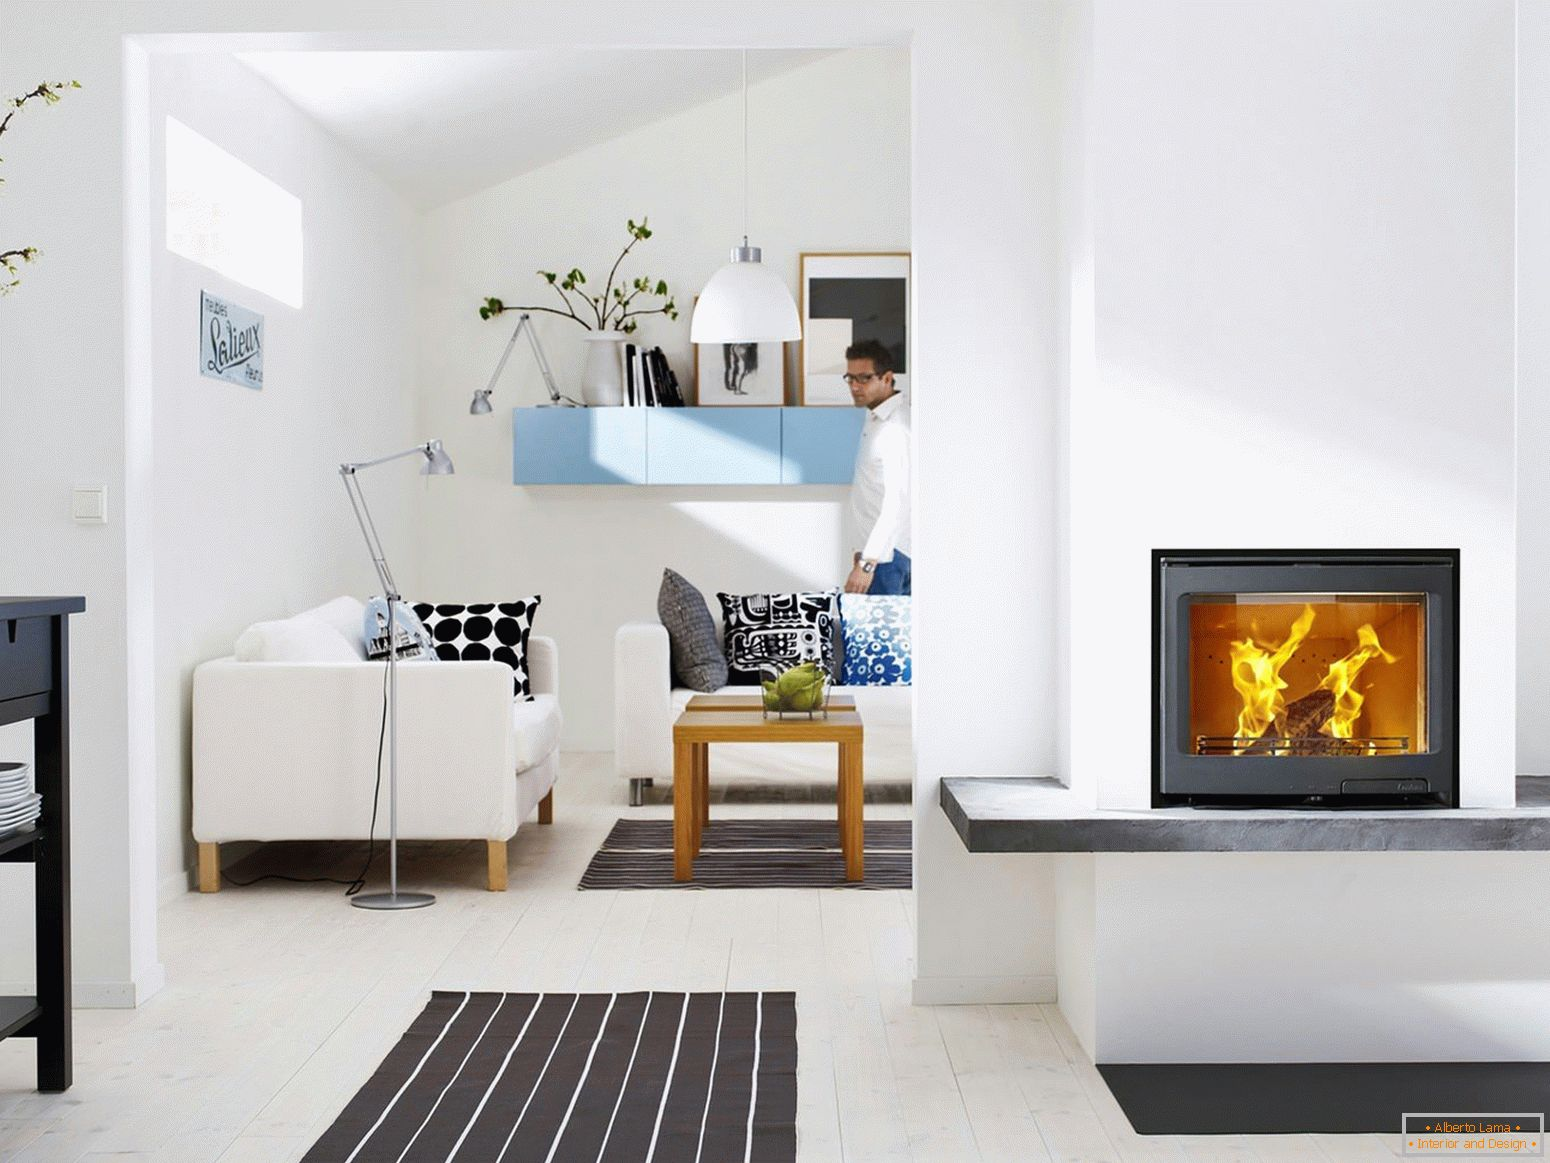 Fireplace in white interior